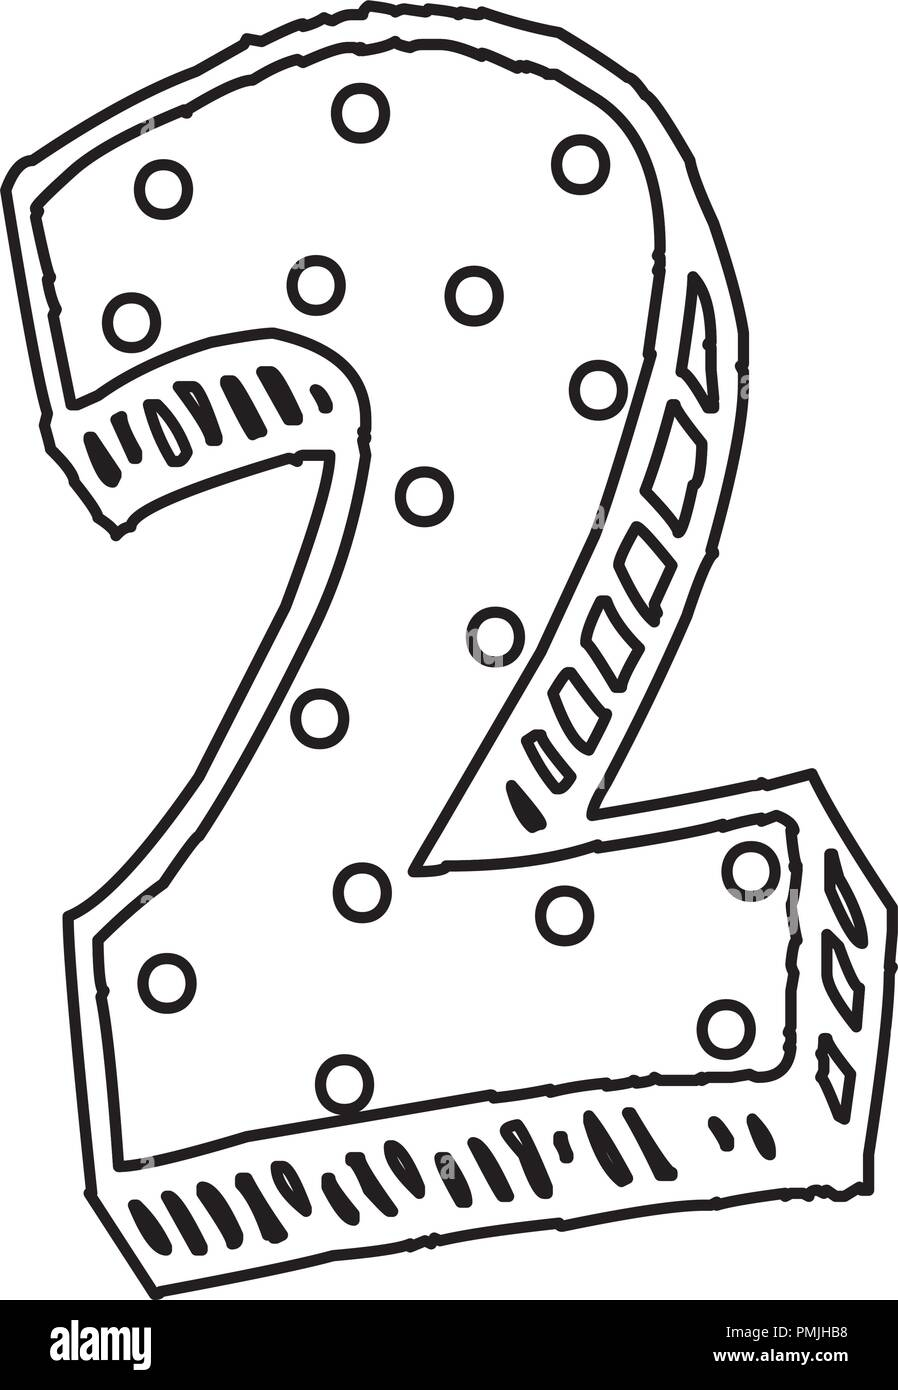 number two icon over white background, vector illustration - Stock Image